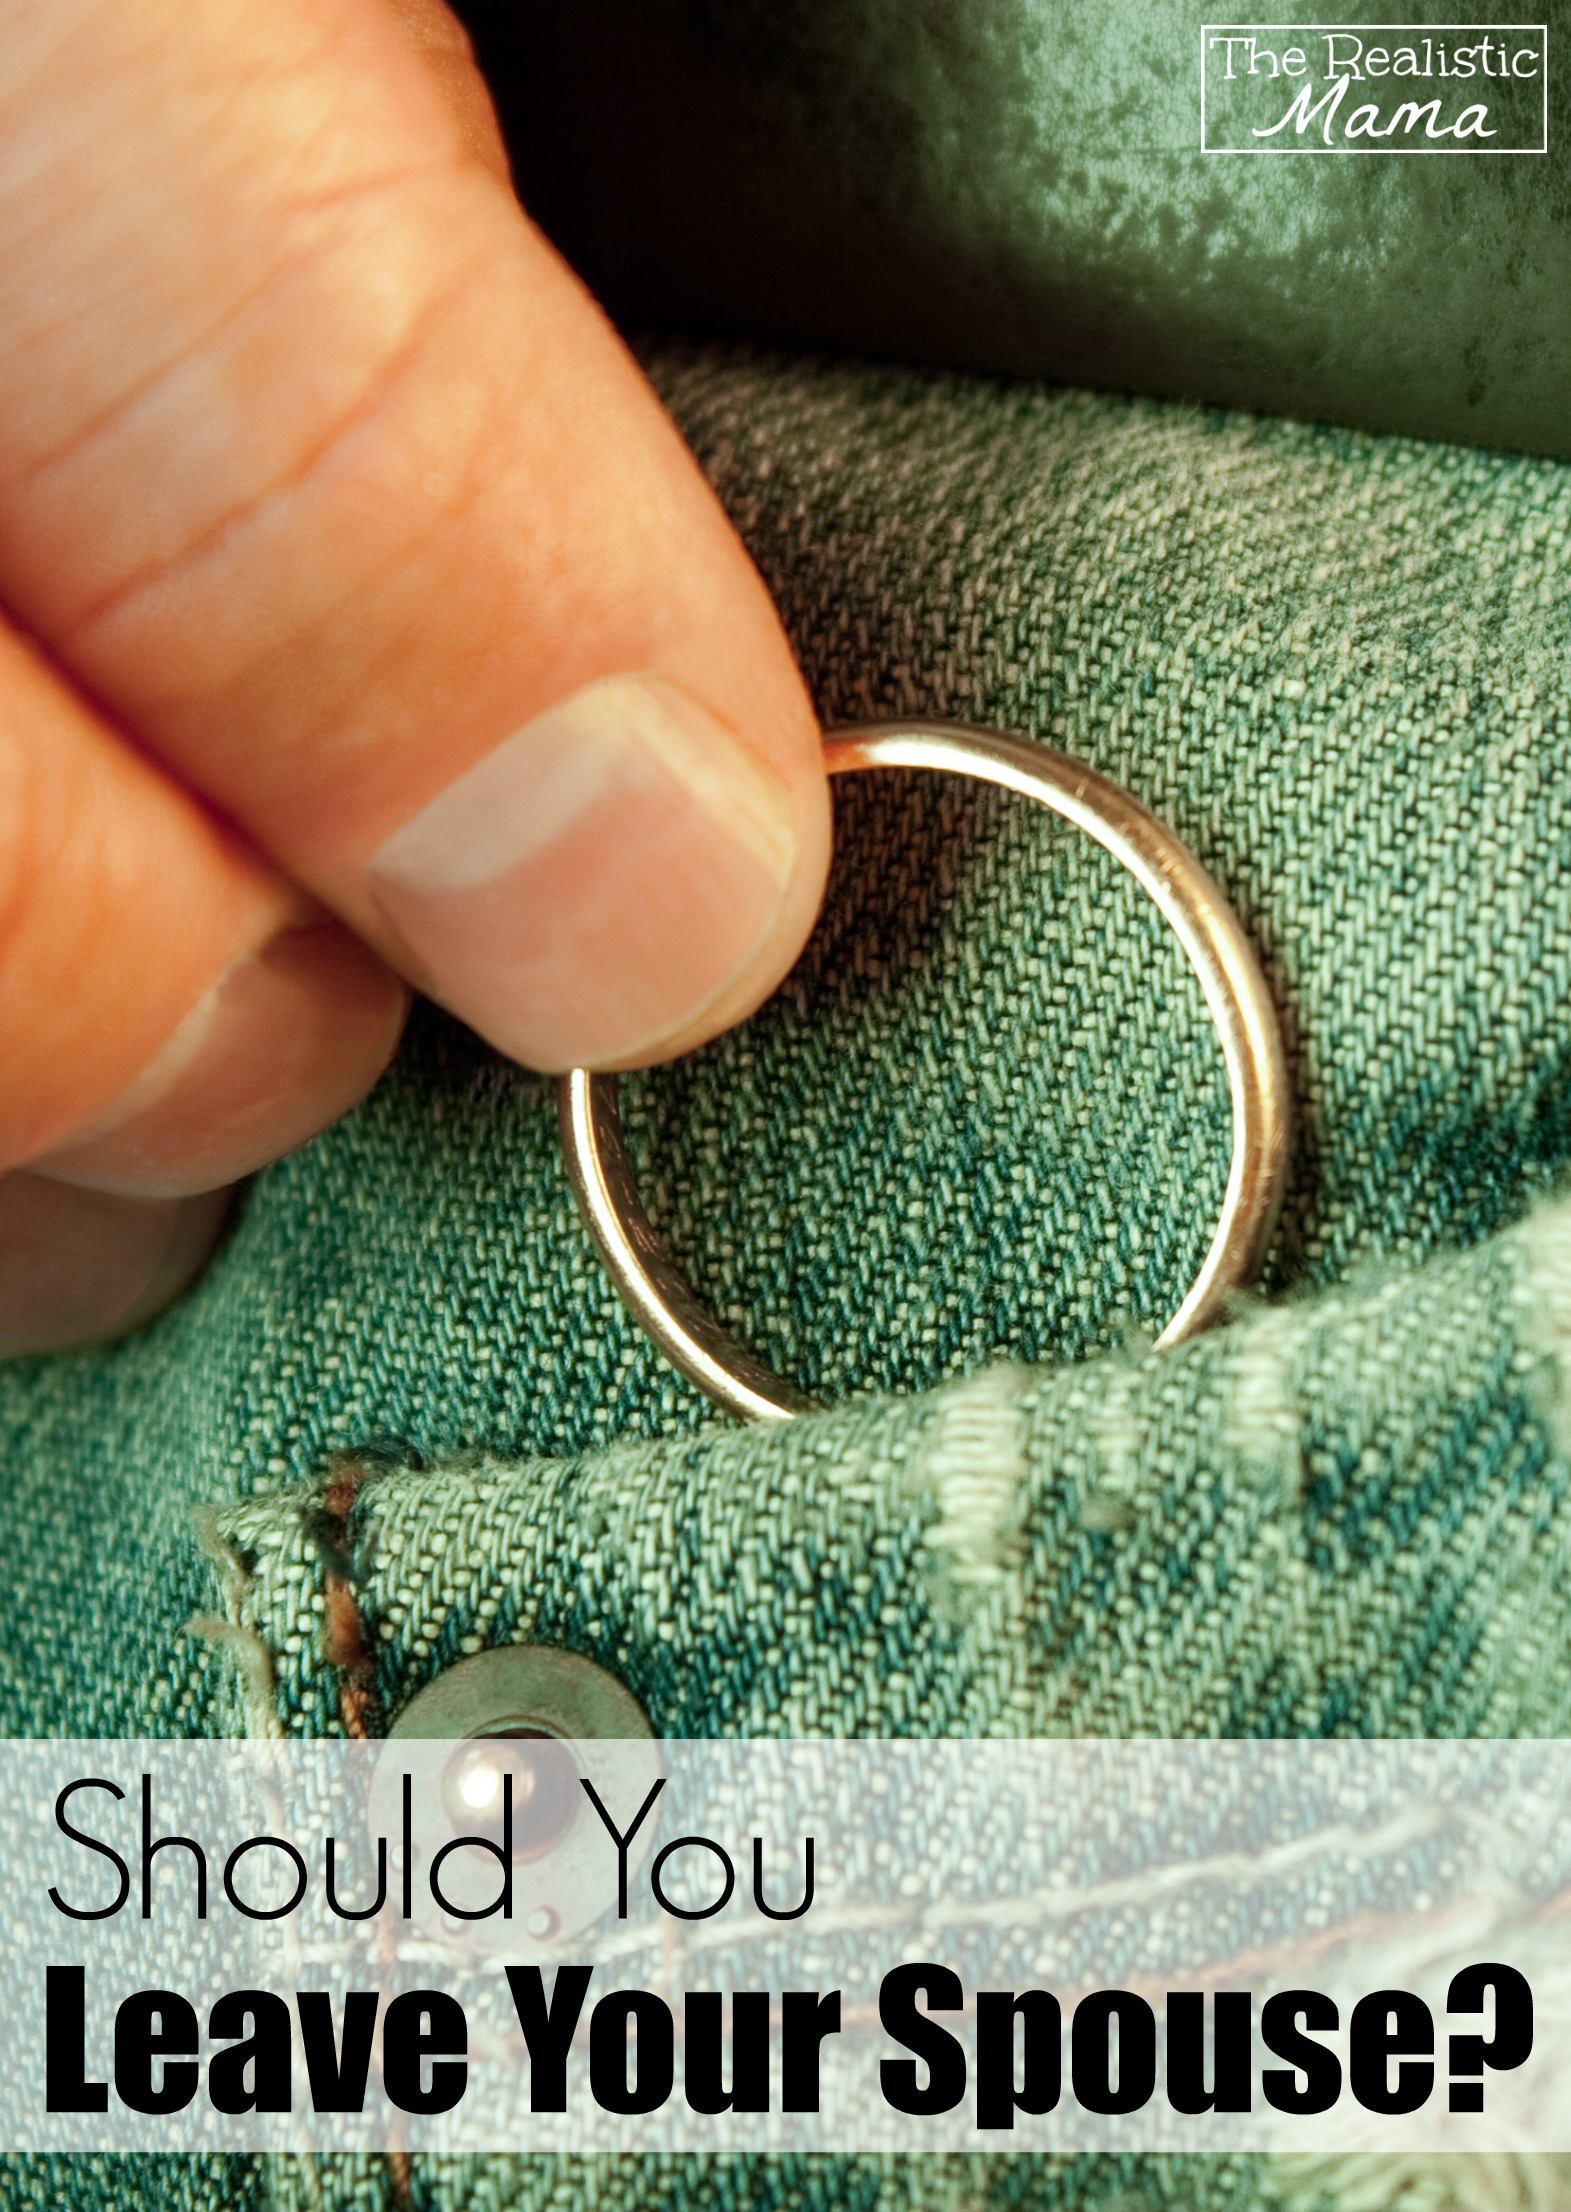 Should You Leave Your Spouse An answer that will really get you thinking.